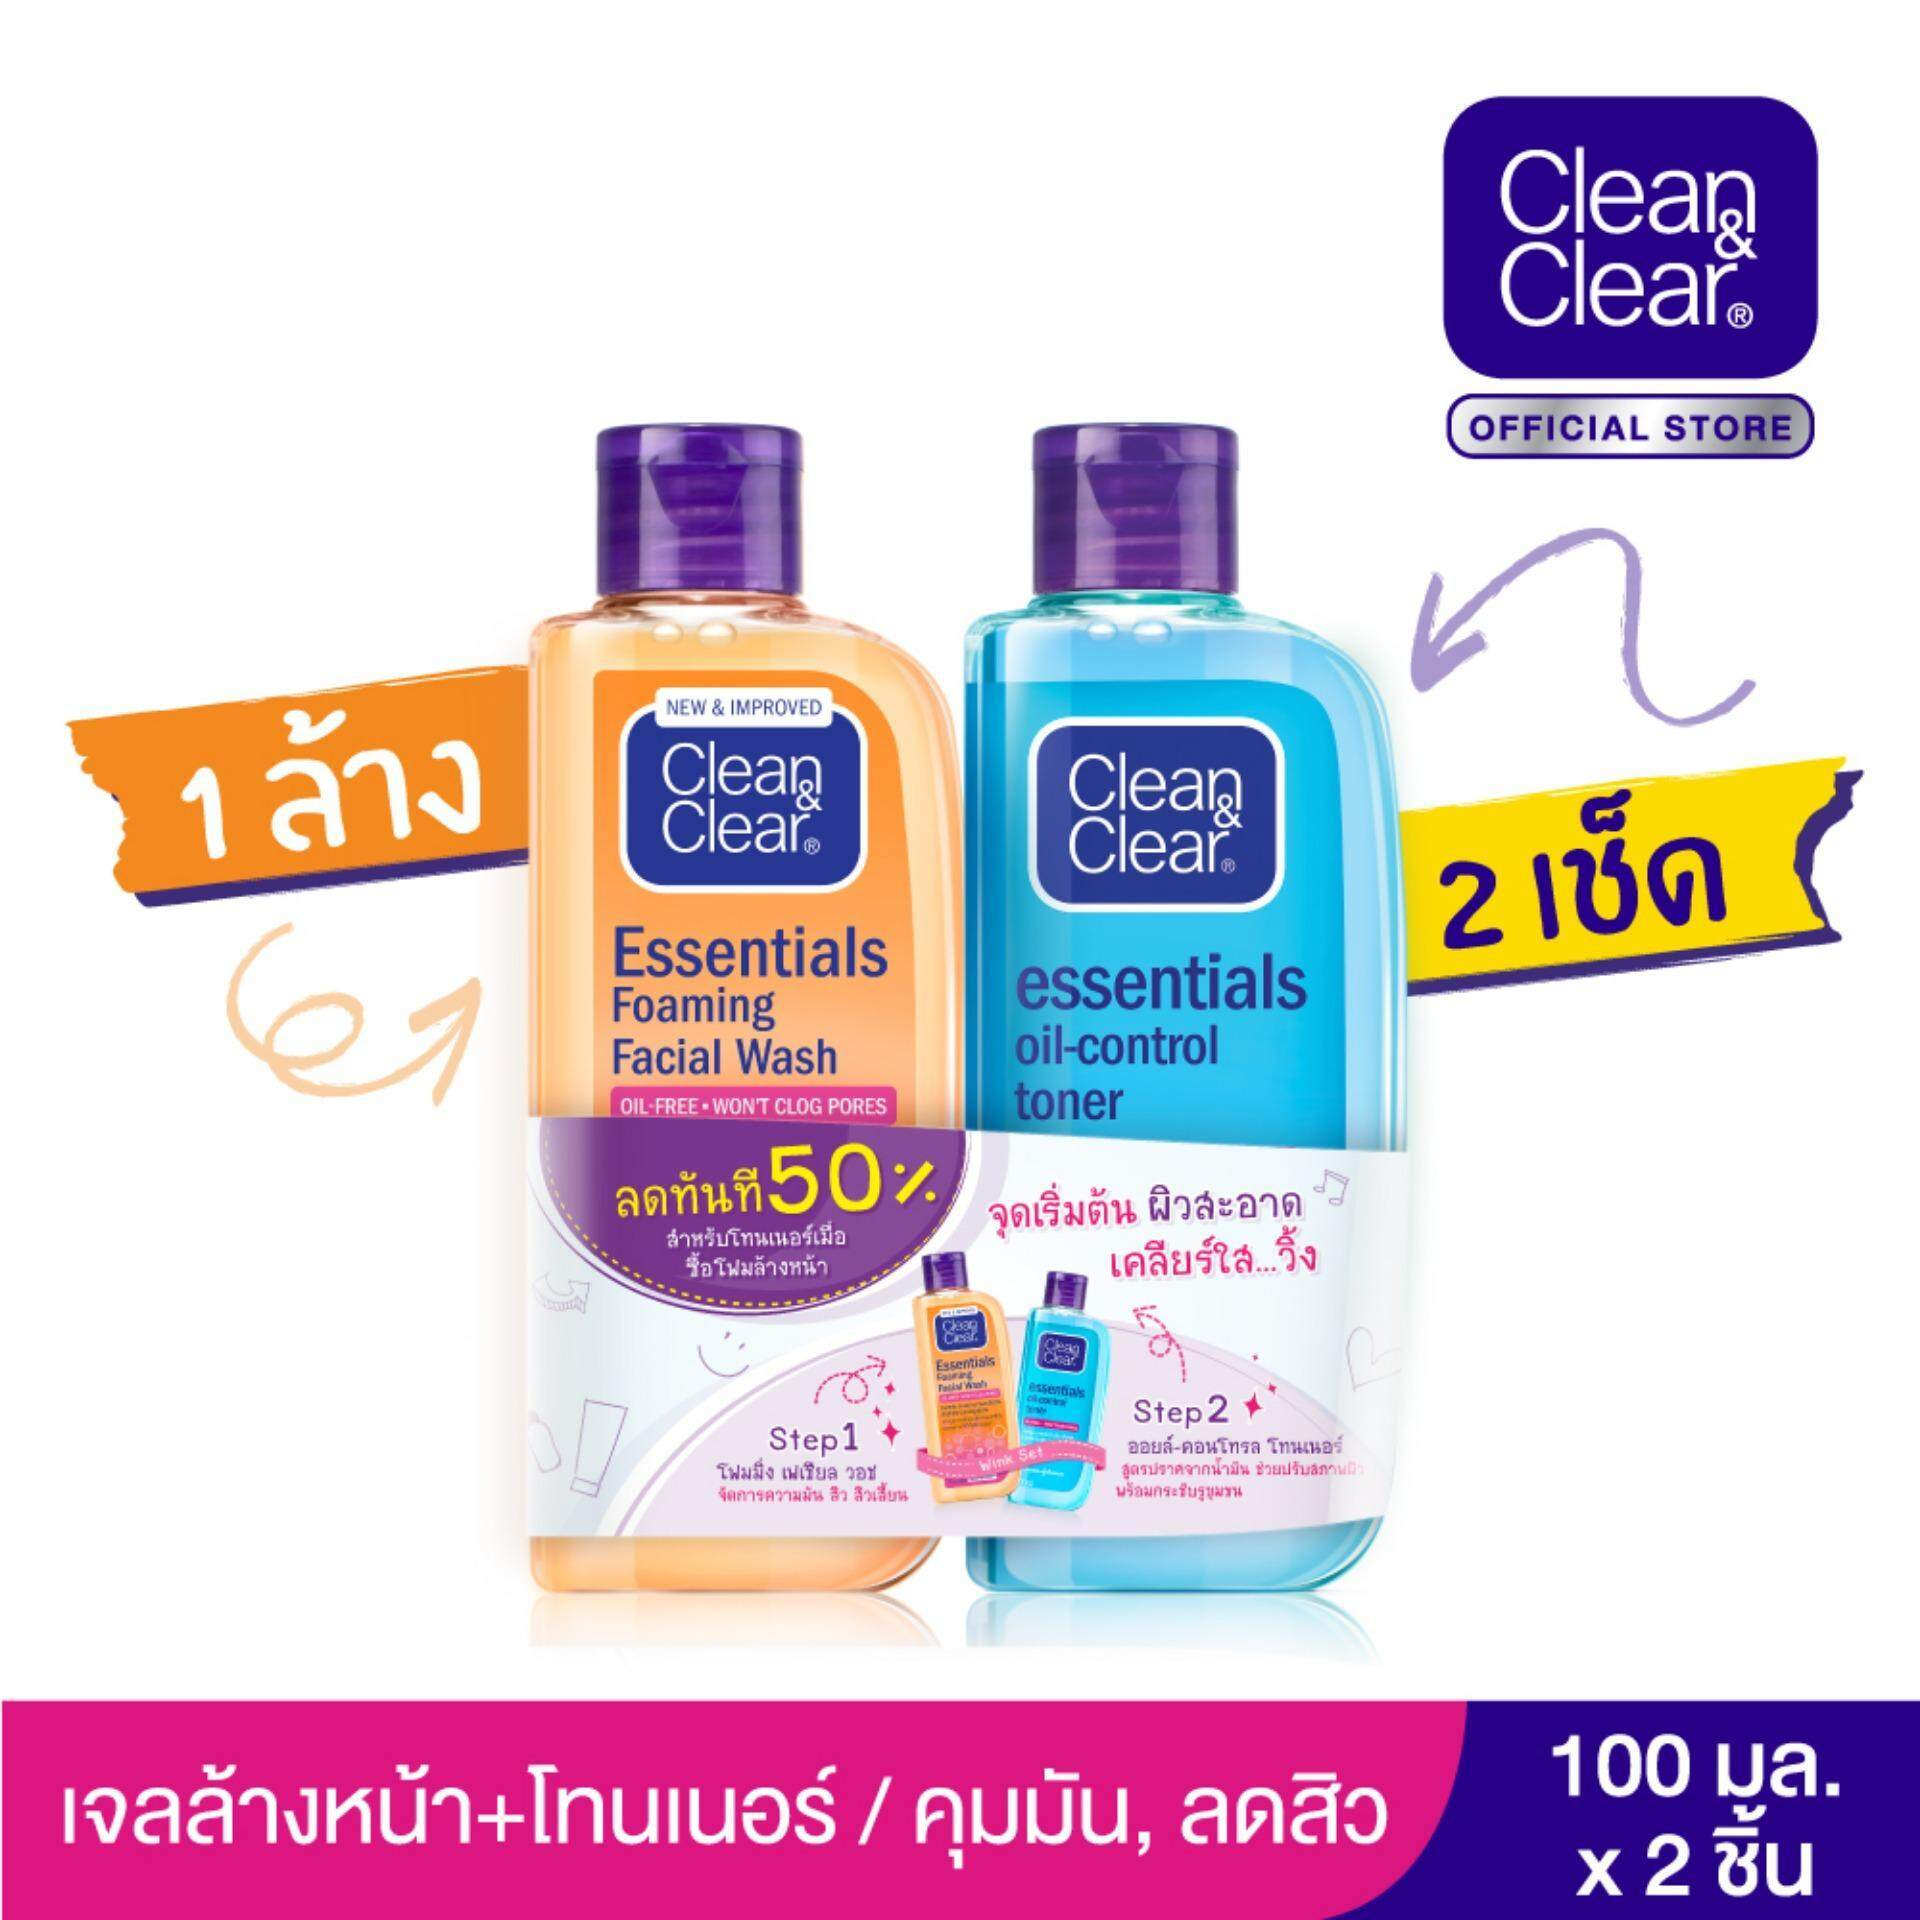 Clean & Clear Essential Foaming Facial Wash 100ml. with Clean & Clear Essentials Oil Control Toner 100ml คลีนแอนด์เคลียร์โฟมล้างหน้า และโทนเนอร์ 100 มล.